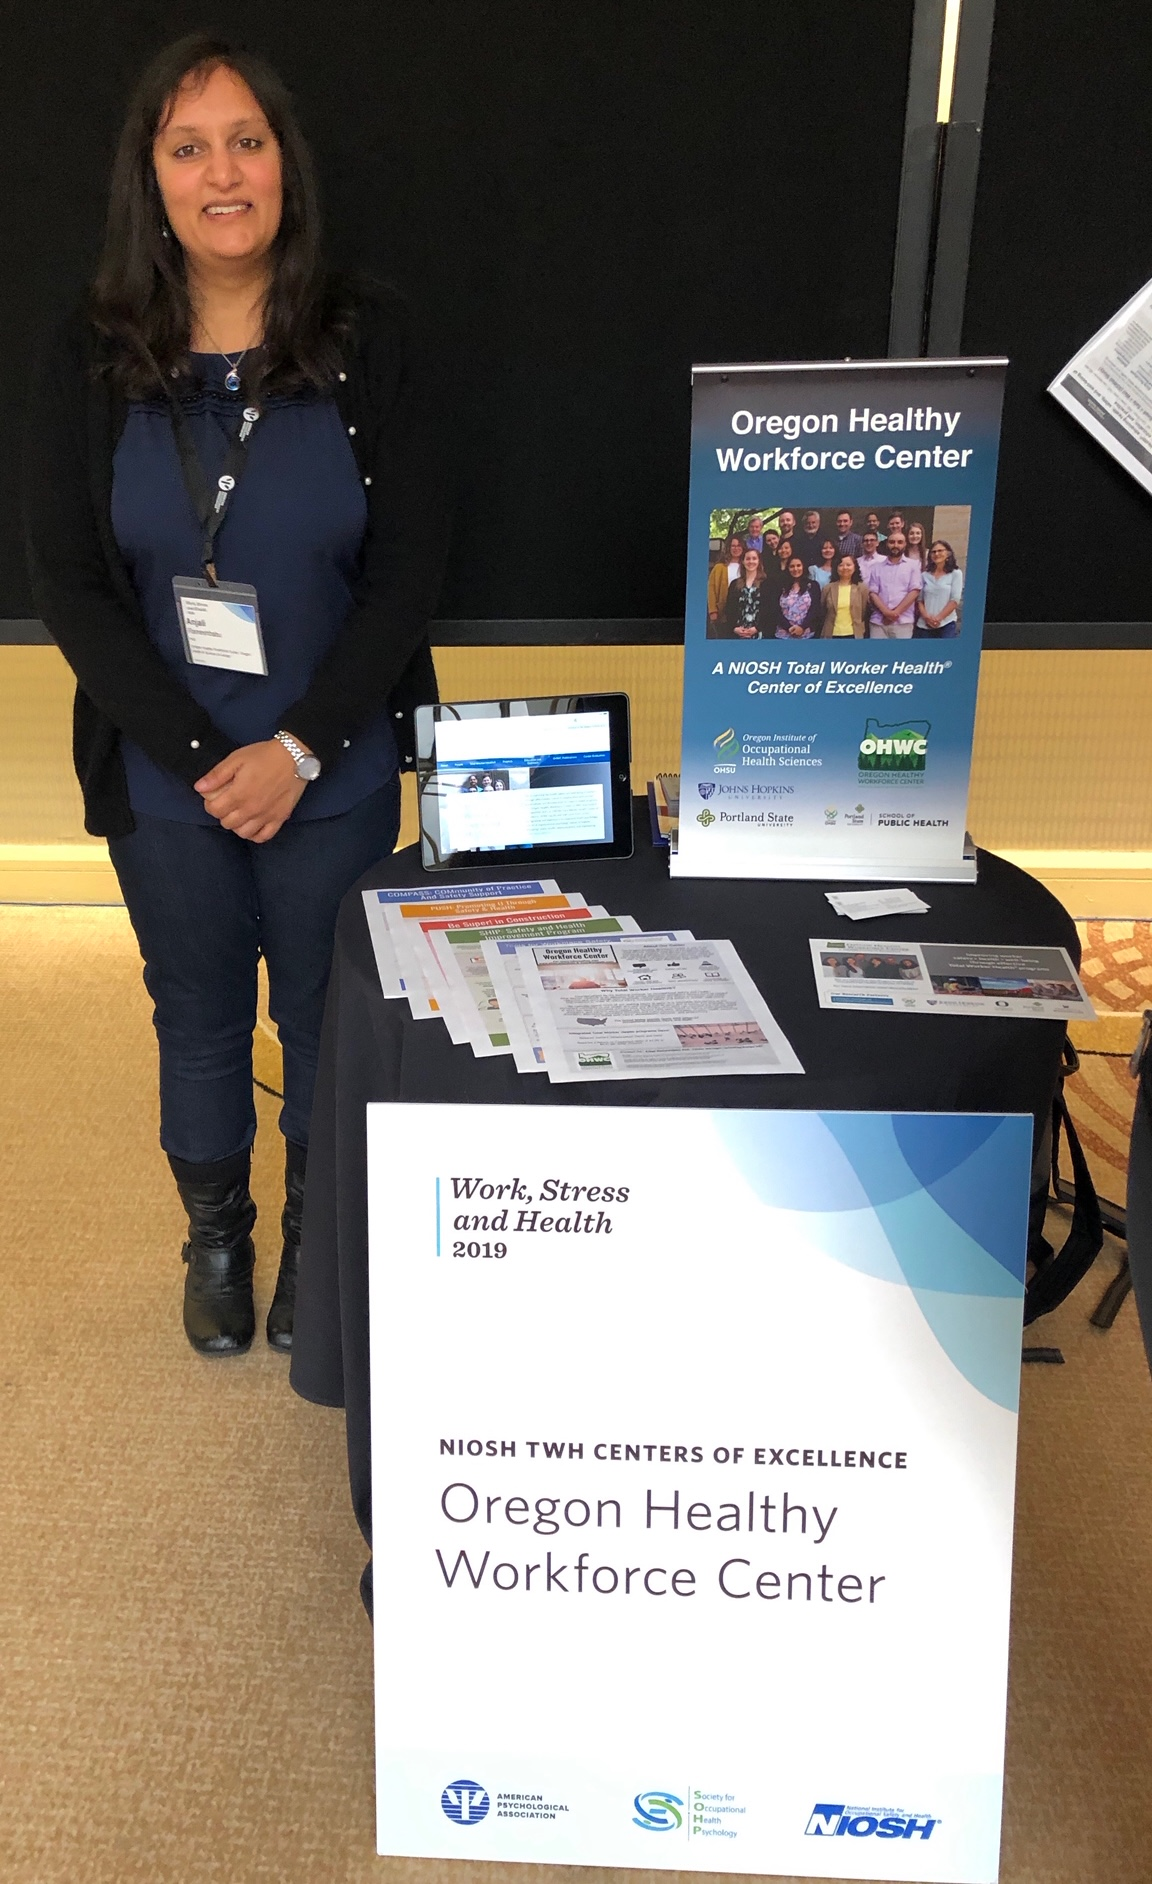 Dr. Anjali Rameshbabu PhD representing Oregon Healthy Workforce Center at Work, Stress and Health 2019